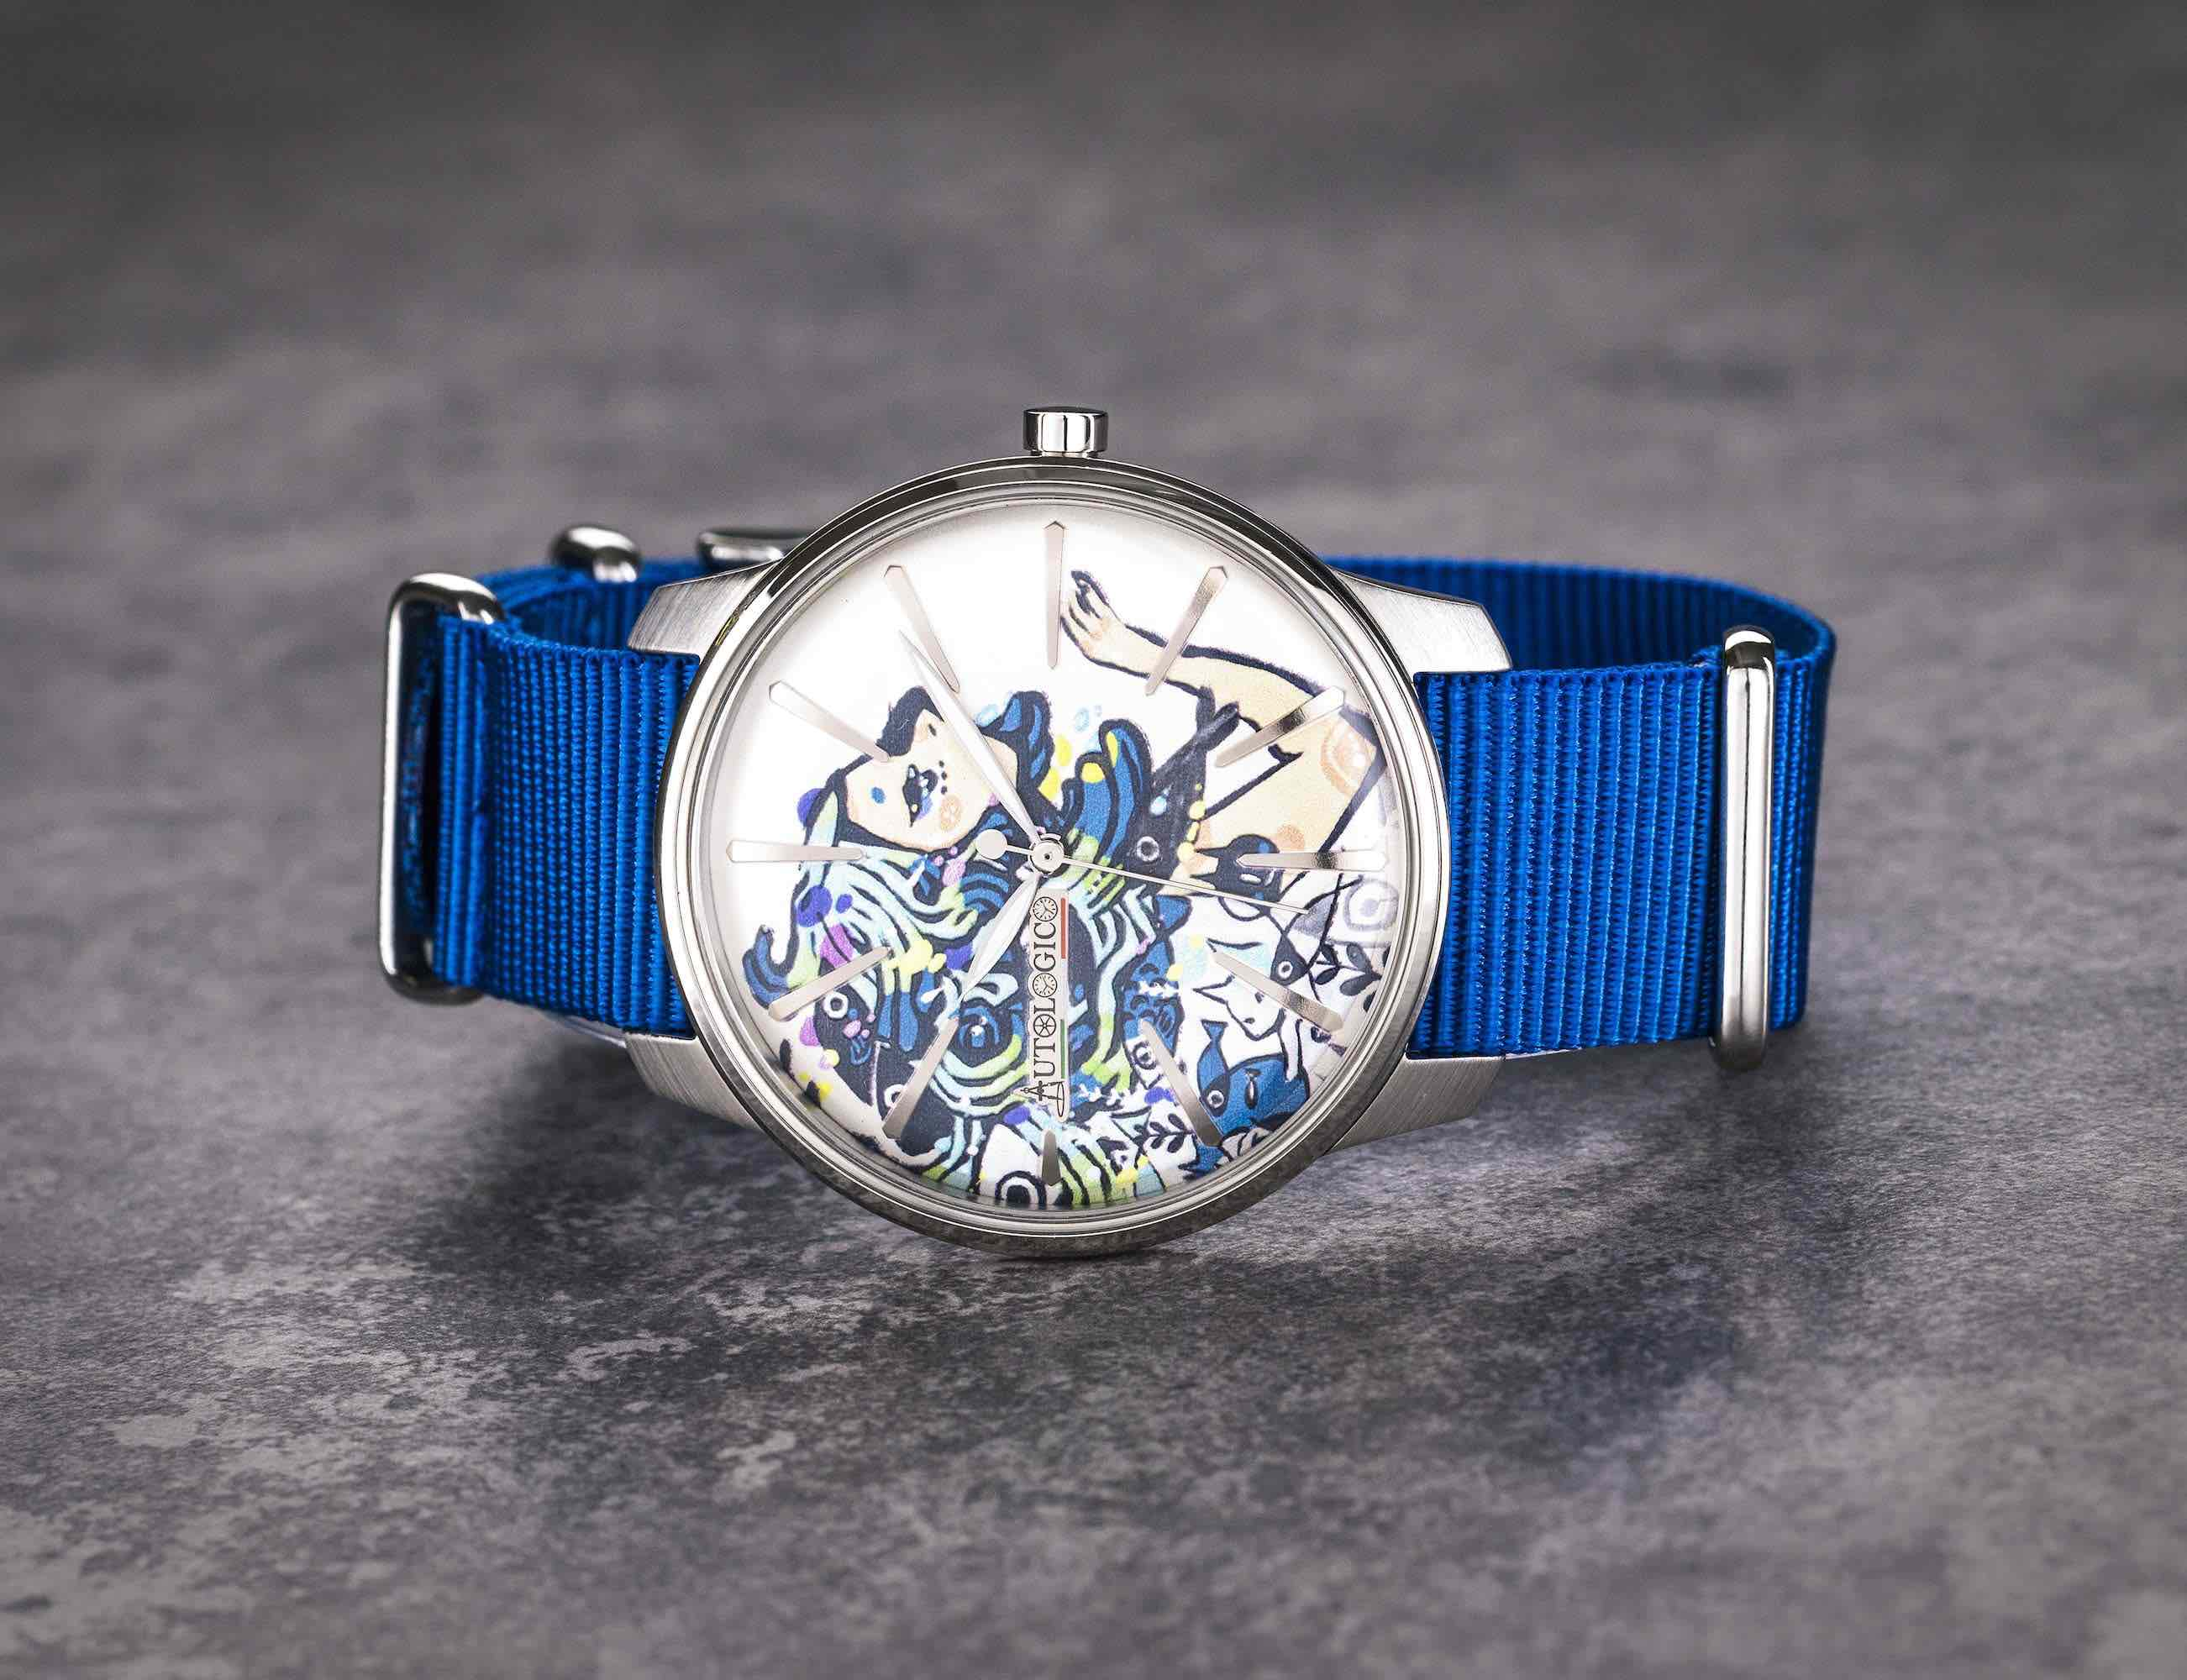 GraffiTIME 3D Printed Graffiti-Inspired Watch offers totally unique style loading=